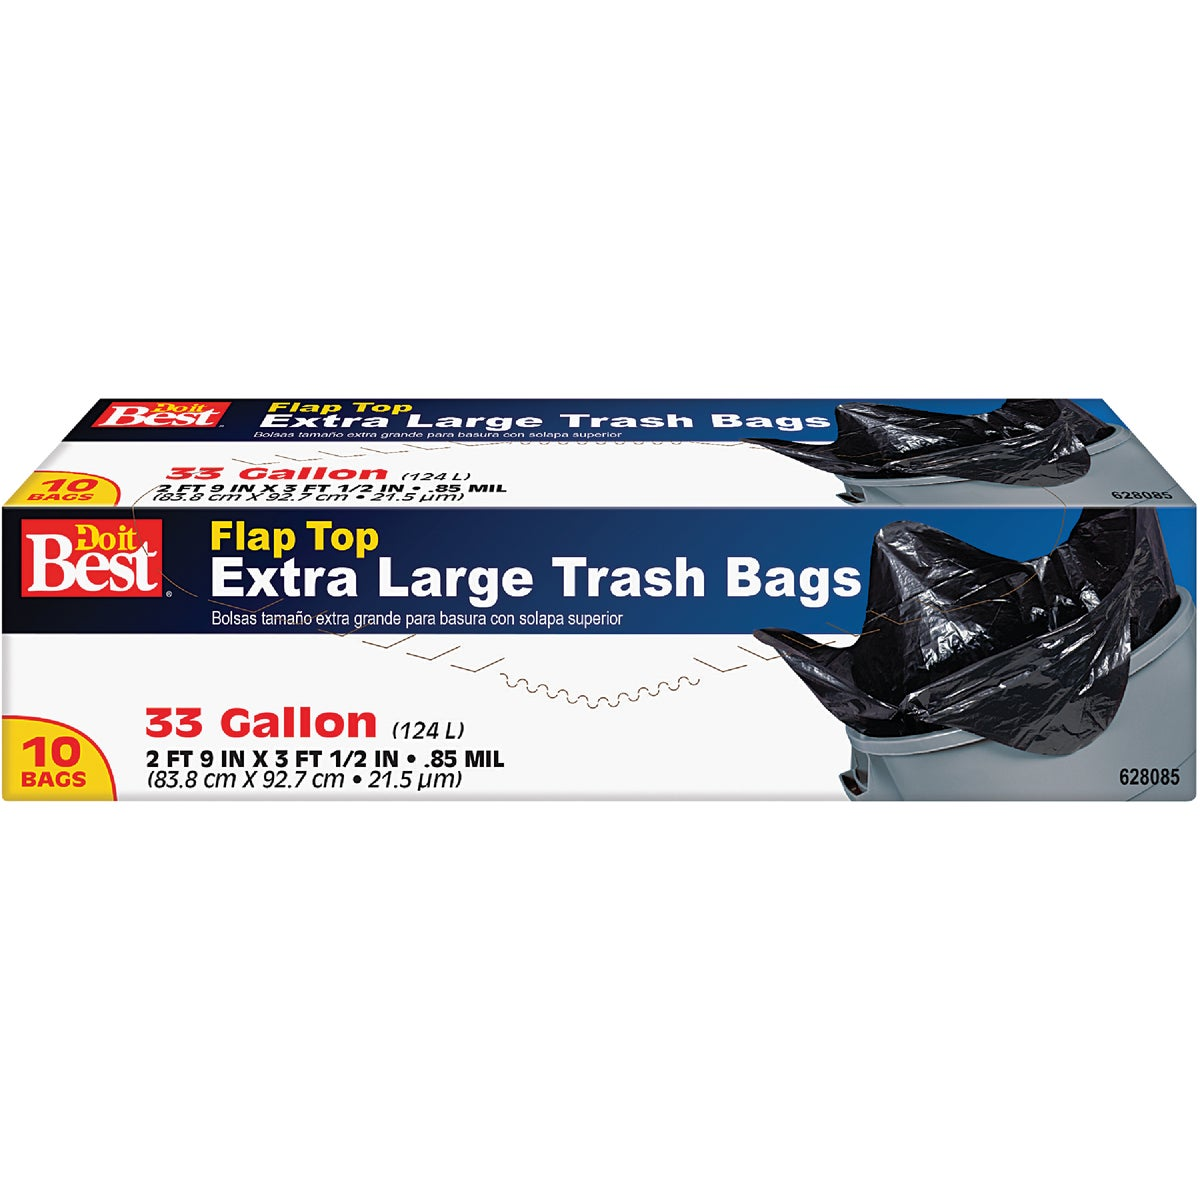 10CT 33GAL TRASH BAG - 628085 by Presto Products